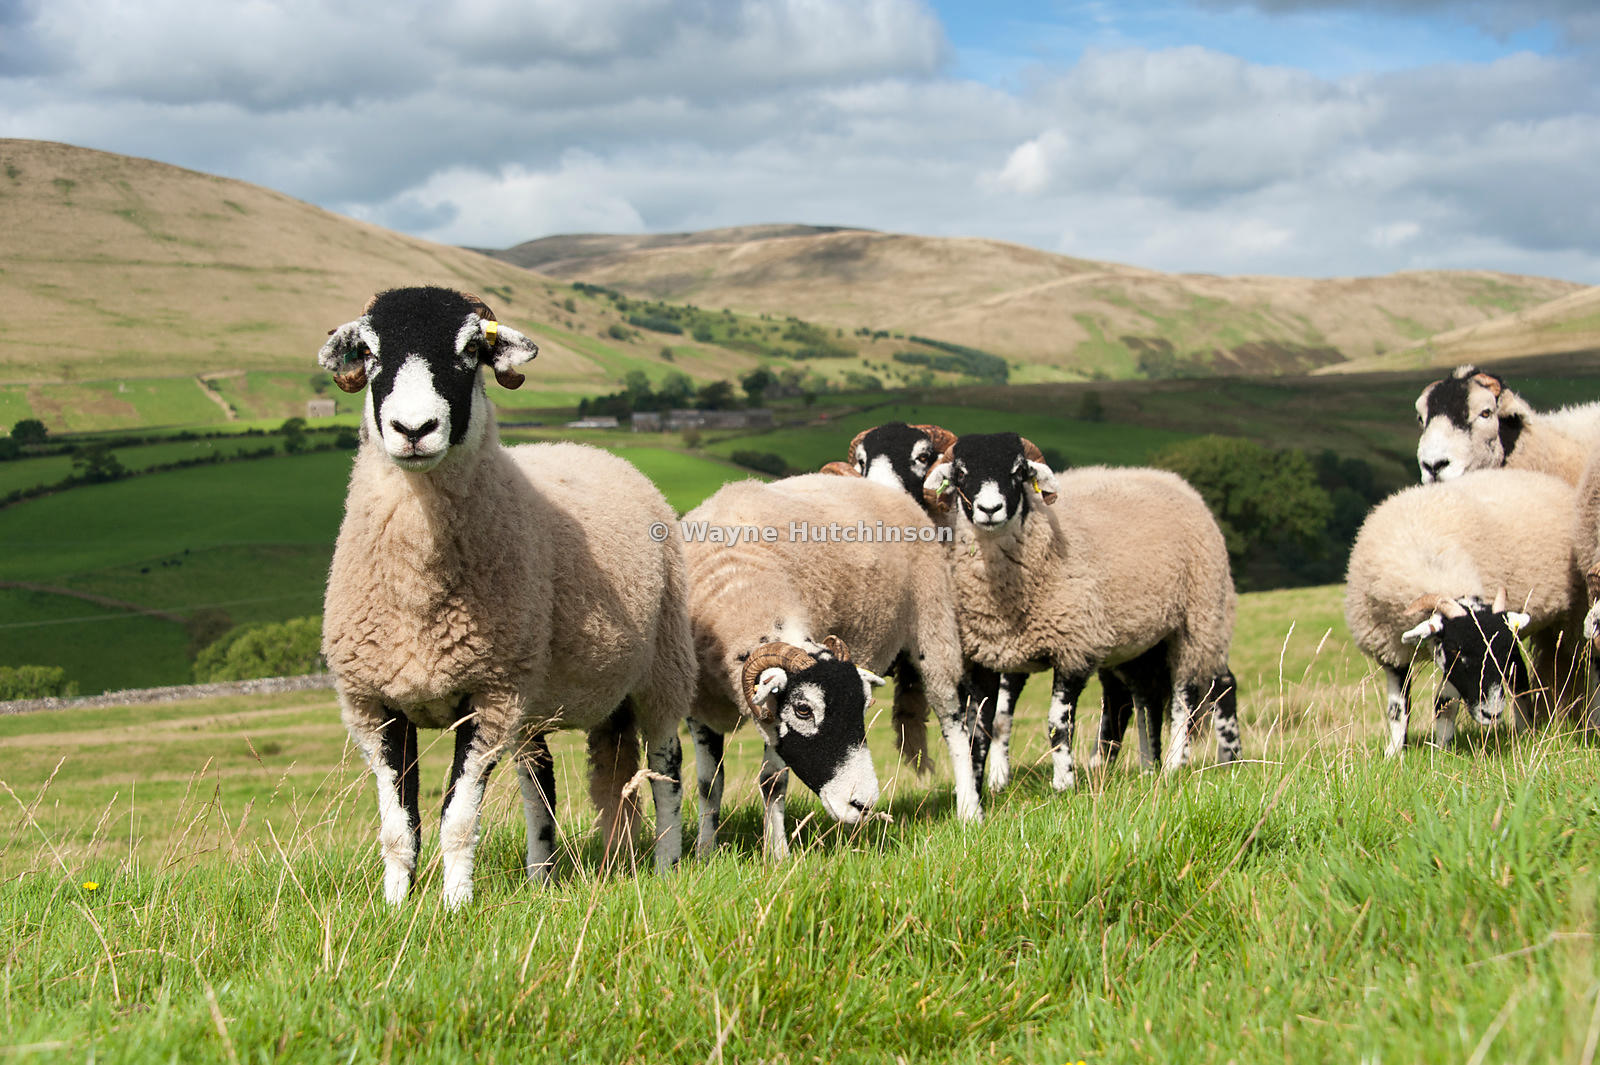 Flock of Swaledale sheep in an upland pasture, with Howgill fells in the background. Cumbria, UK